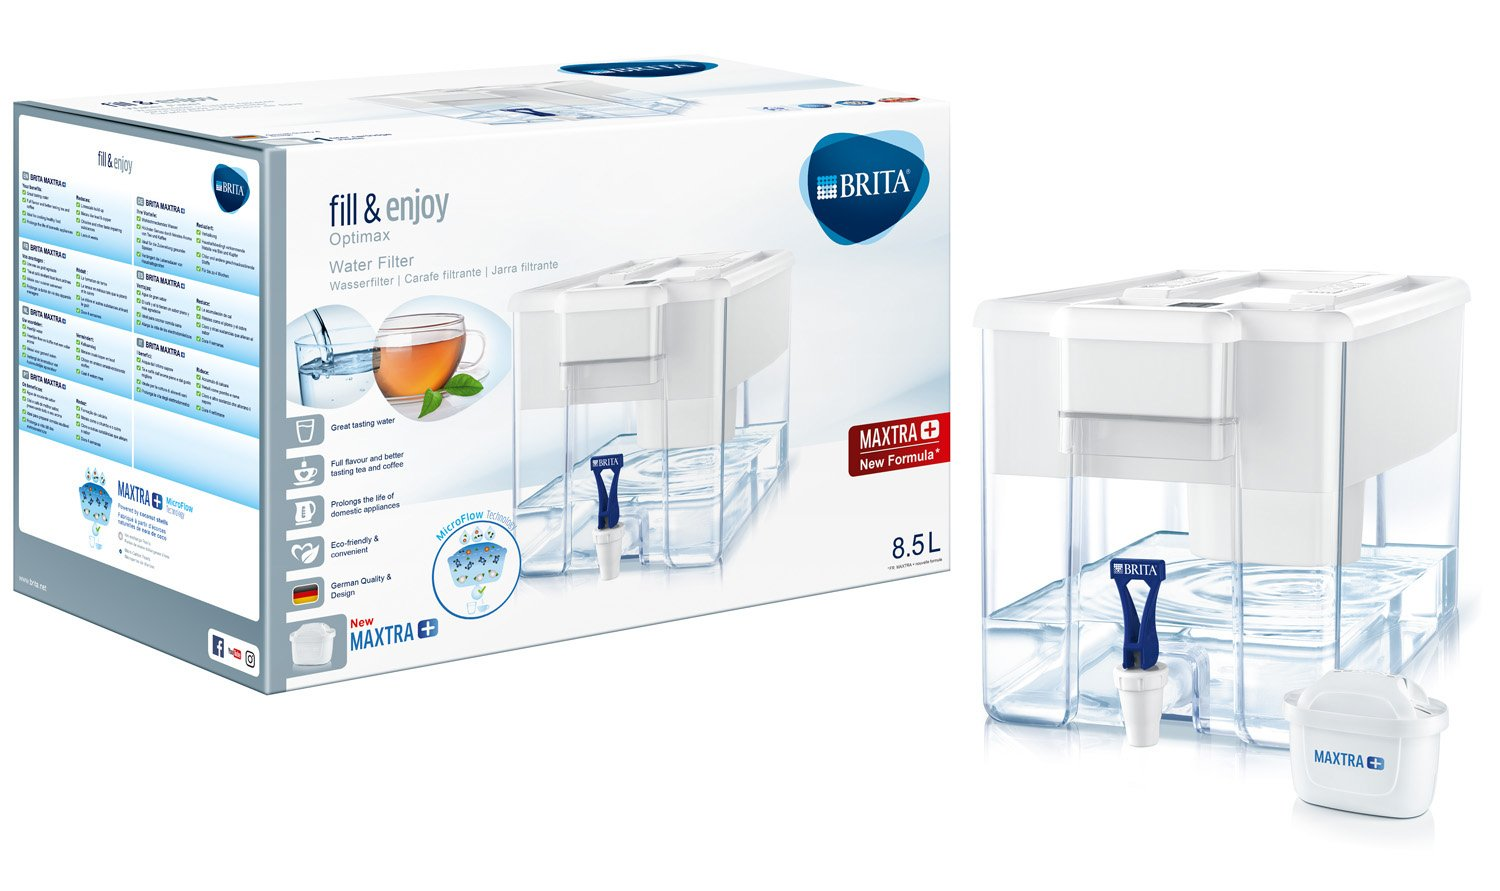 BRITA Optimax - Dispensador de agua filtrada con 1 filtro MAXTRA+, color blanco: Amazon.es: Hogar